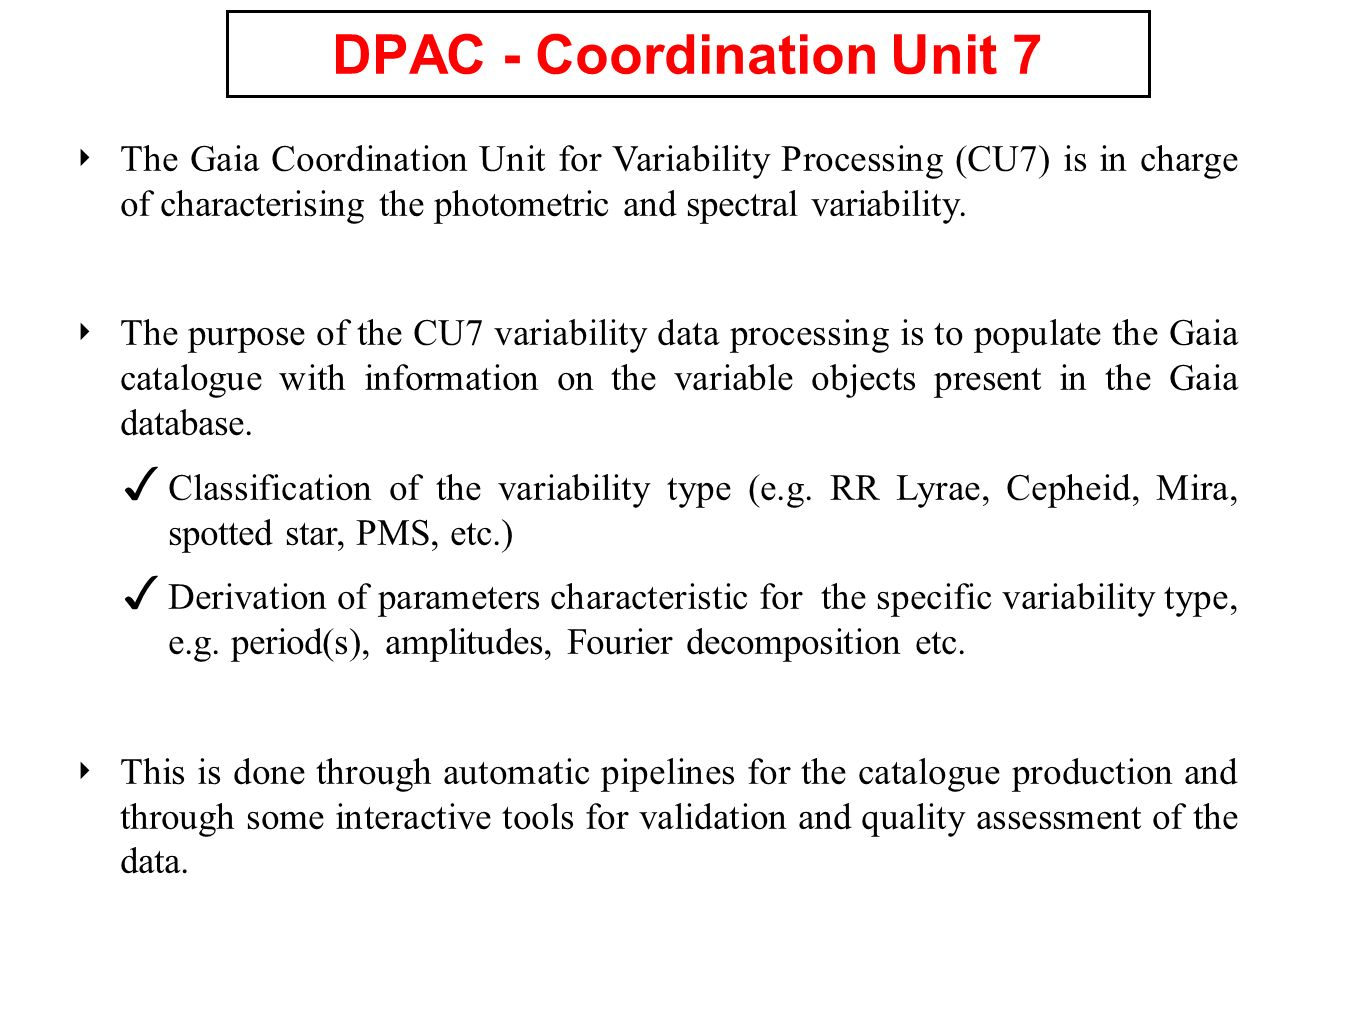 DPAC - Coordination Unit 7 The Gaia Coordination Unit for Variability Processing (CU7) is in charge of characterising the photometric and spectral variability.